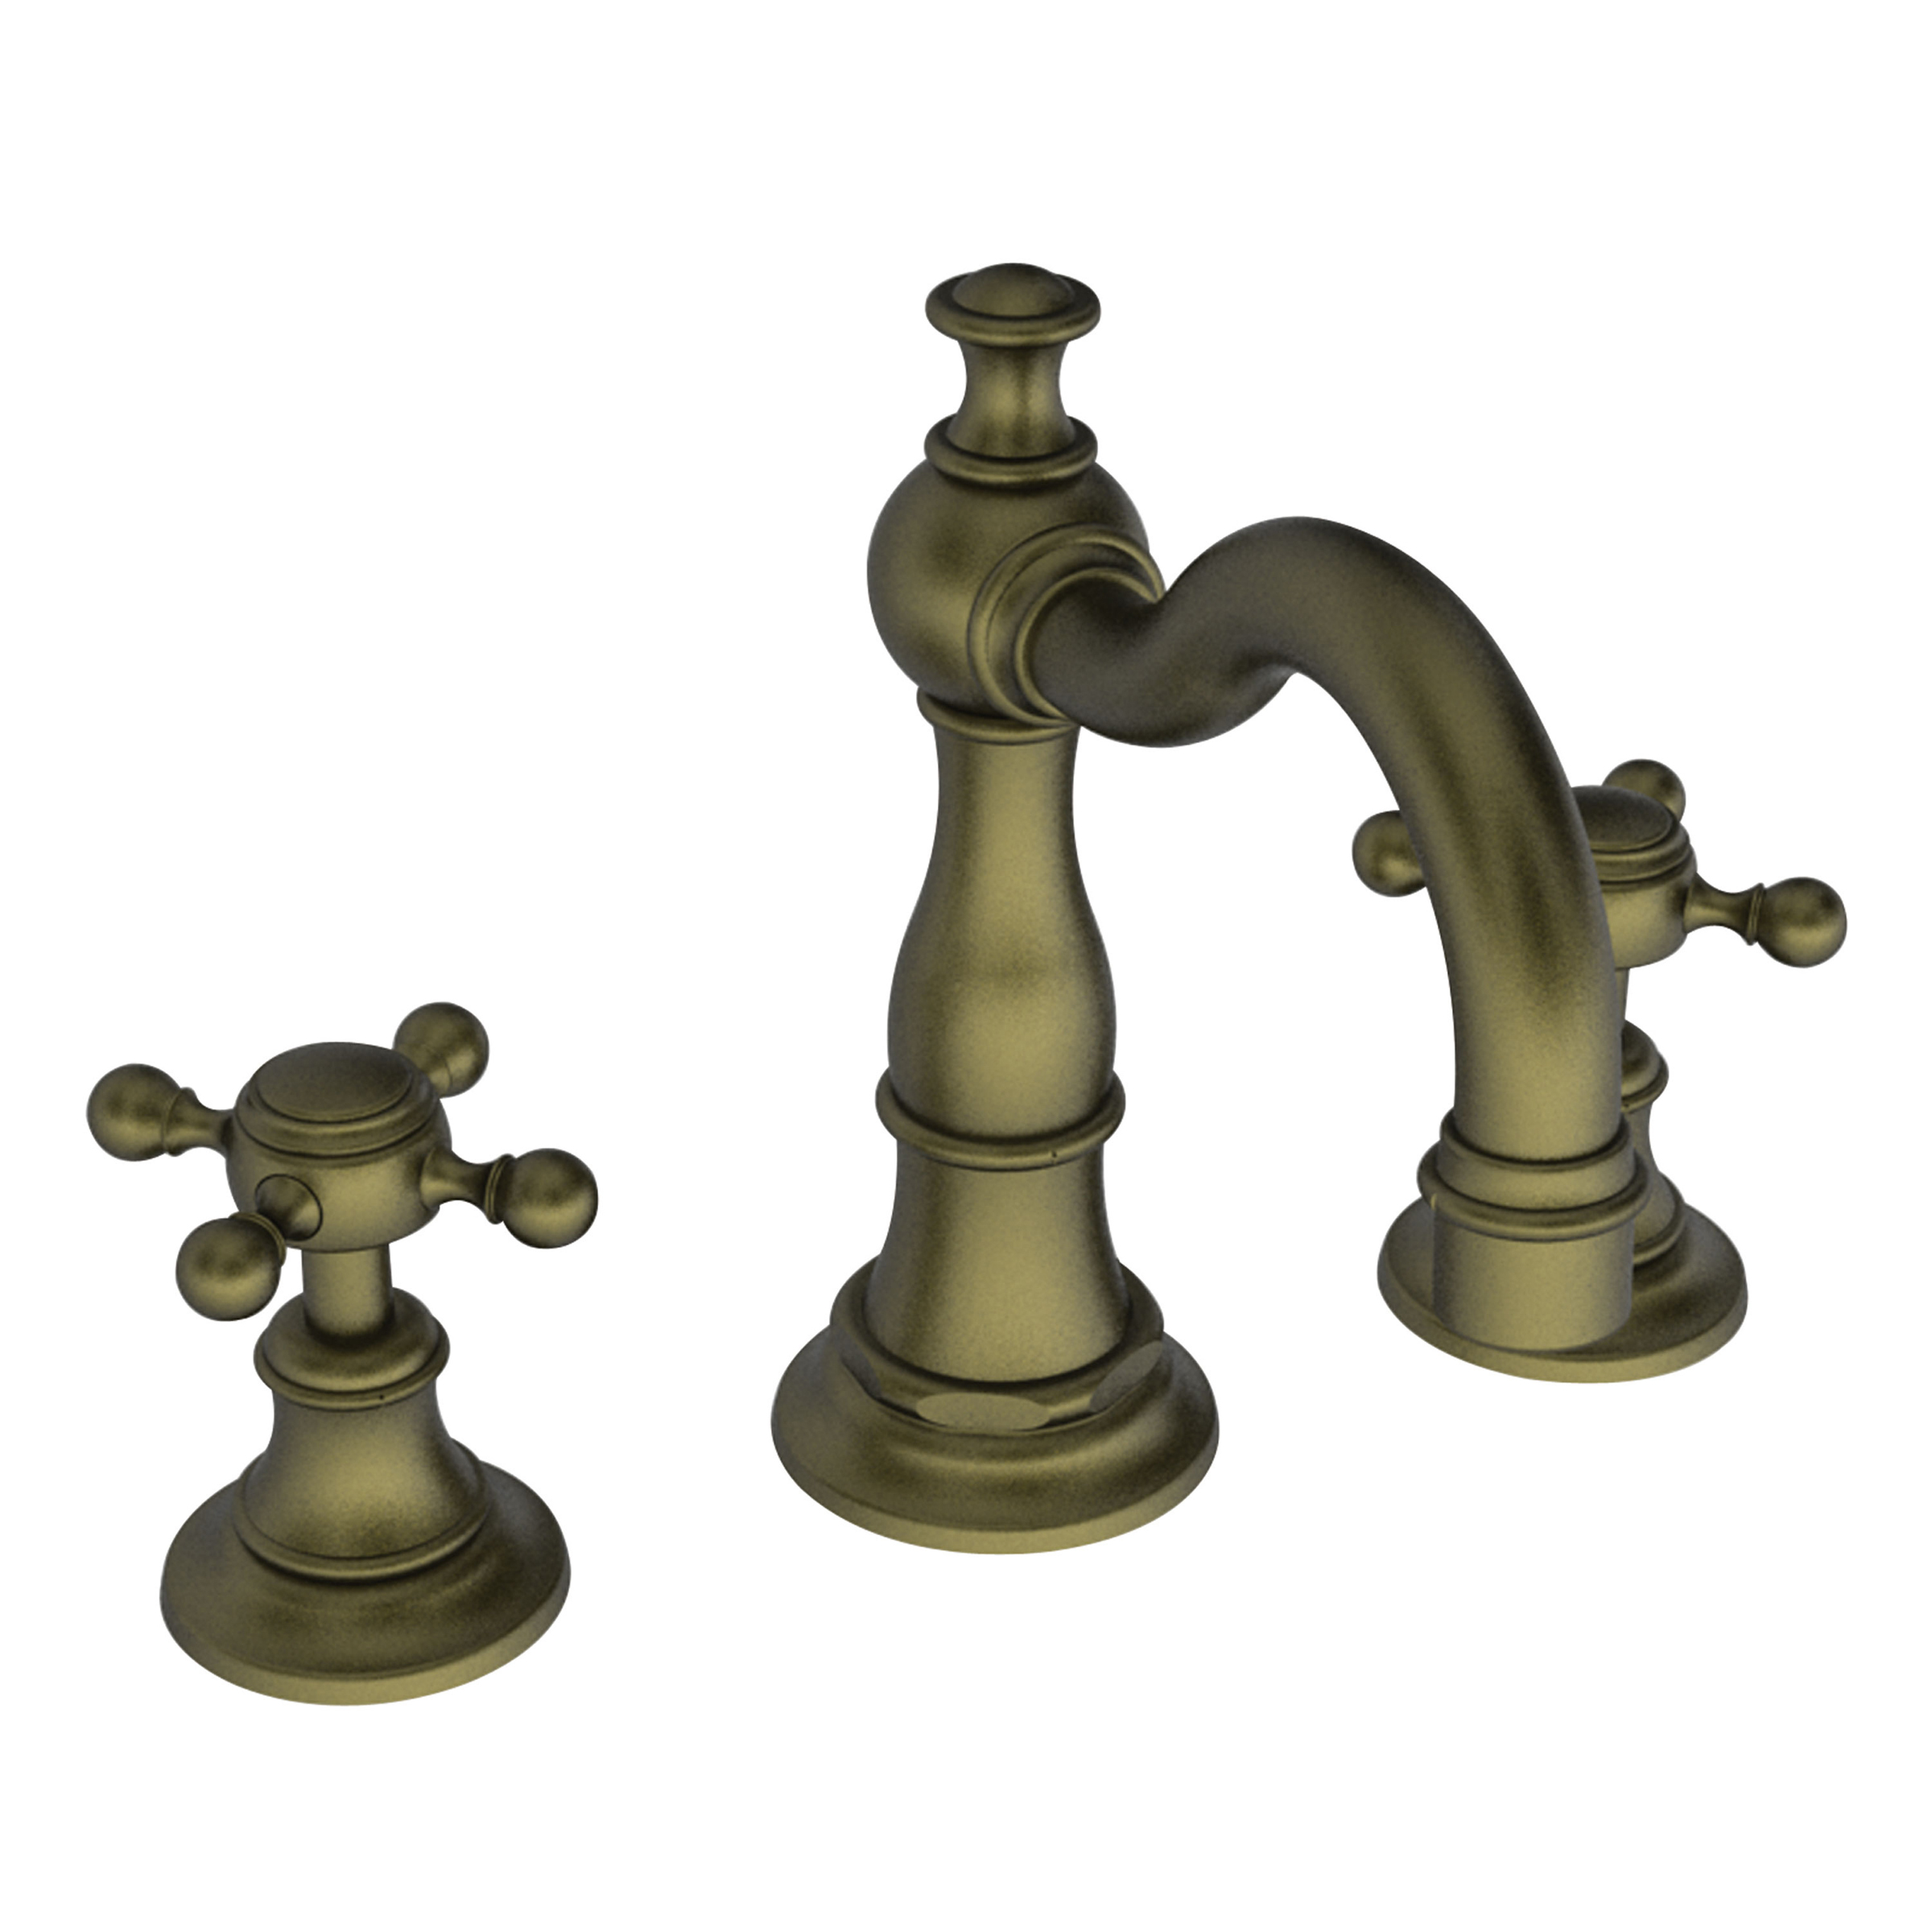 Newport Brass 1760 Widespread Faucet Newport Brass Faucets